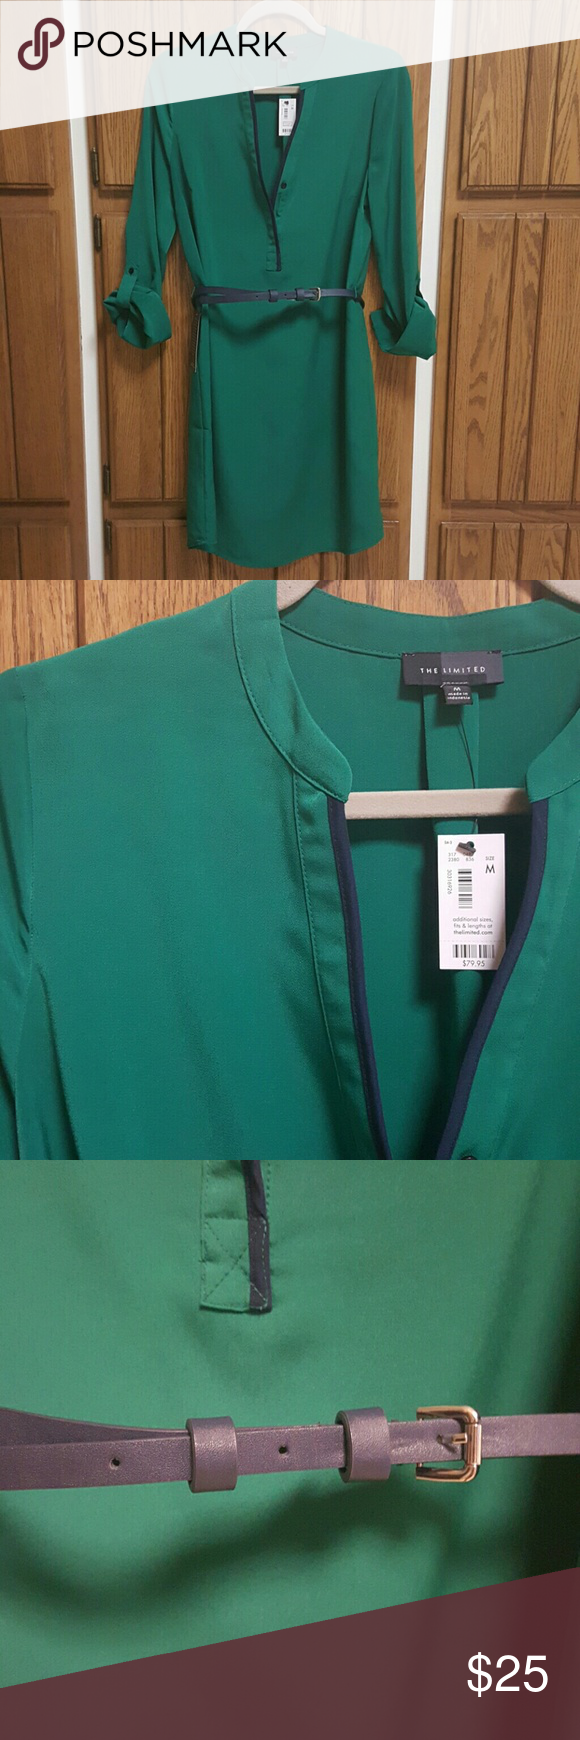 NWT The Limited Ashton Shirt Dress NWT The Limited Shirt Dress with navy belt; belt had silver hardware; emerald green with navy trim; smoke/pet free home The Limited Dresses Long Sleeve